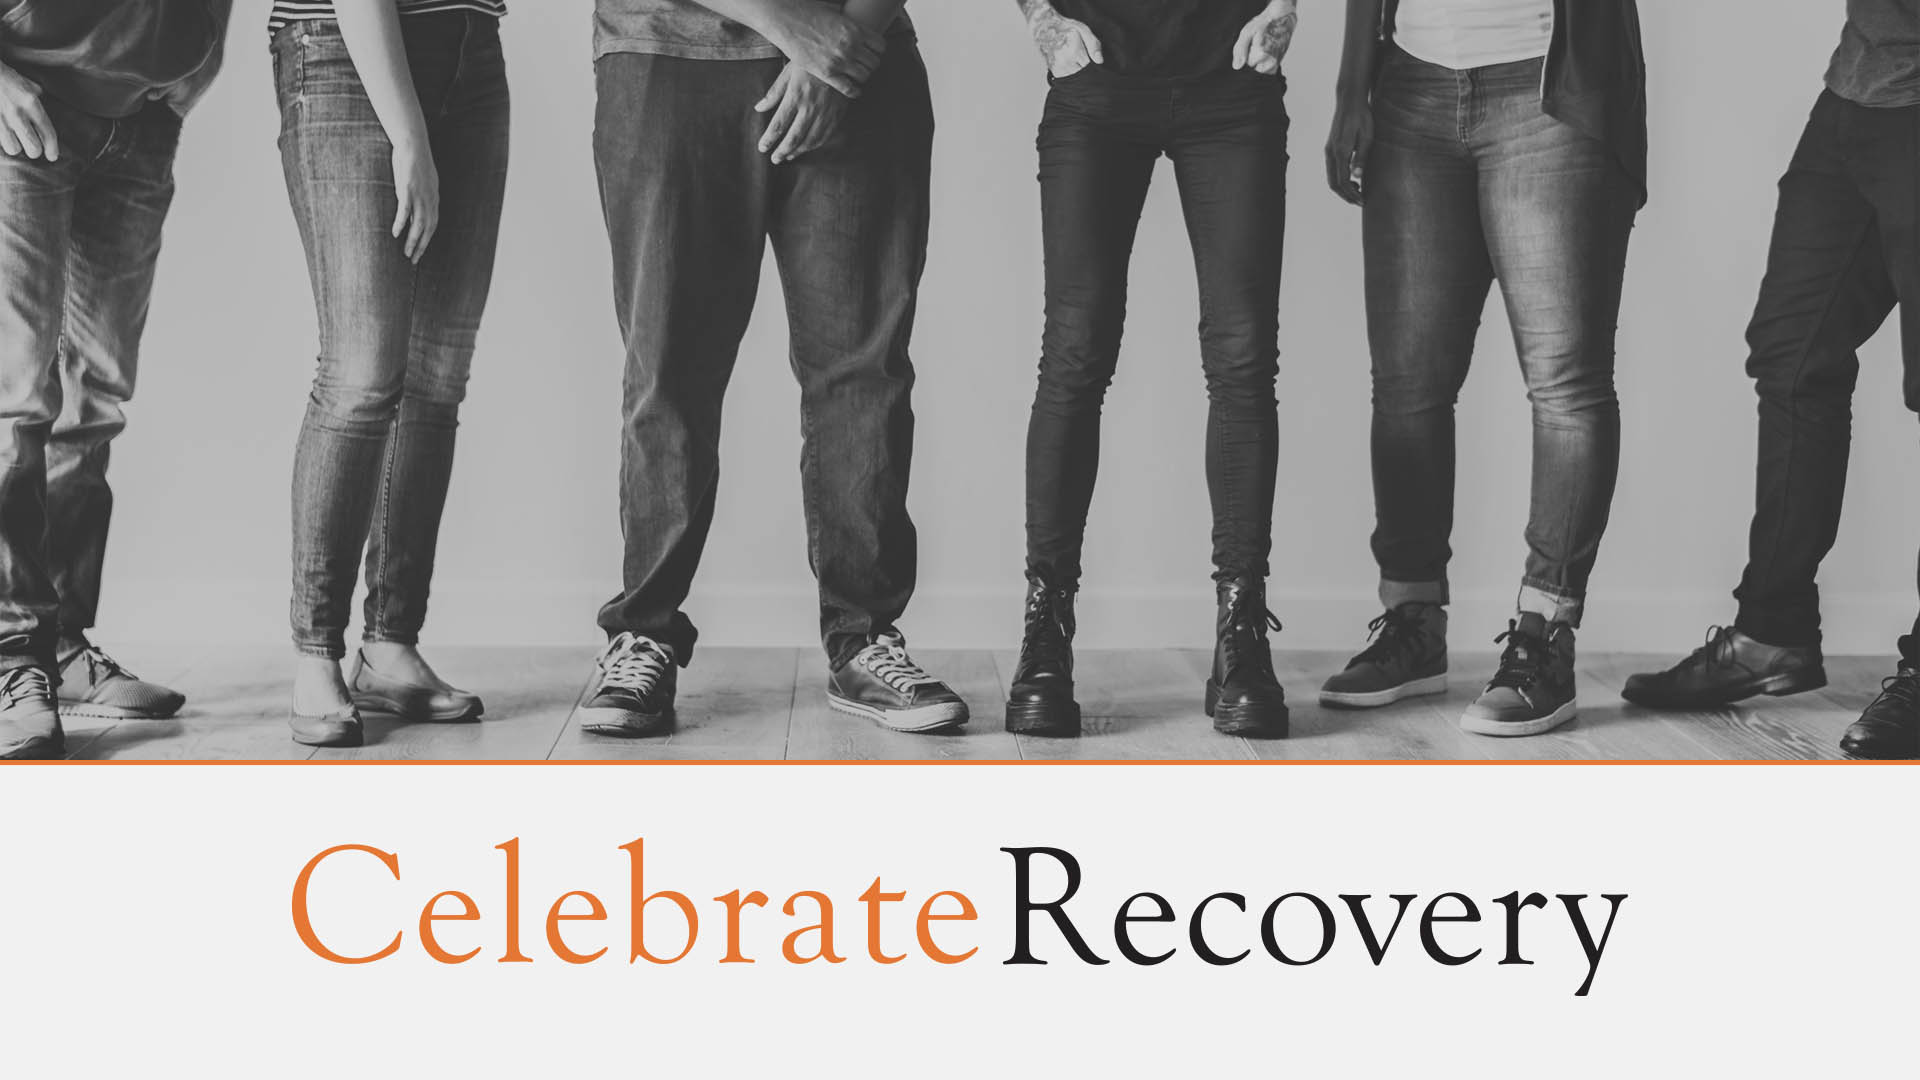 Celebrate Recovery community group at Pearce Church in Rochester, NY